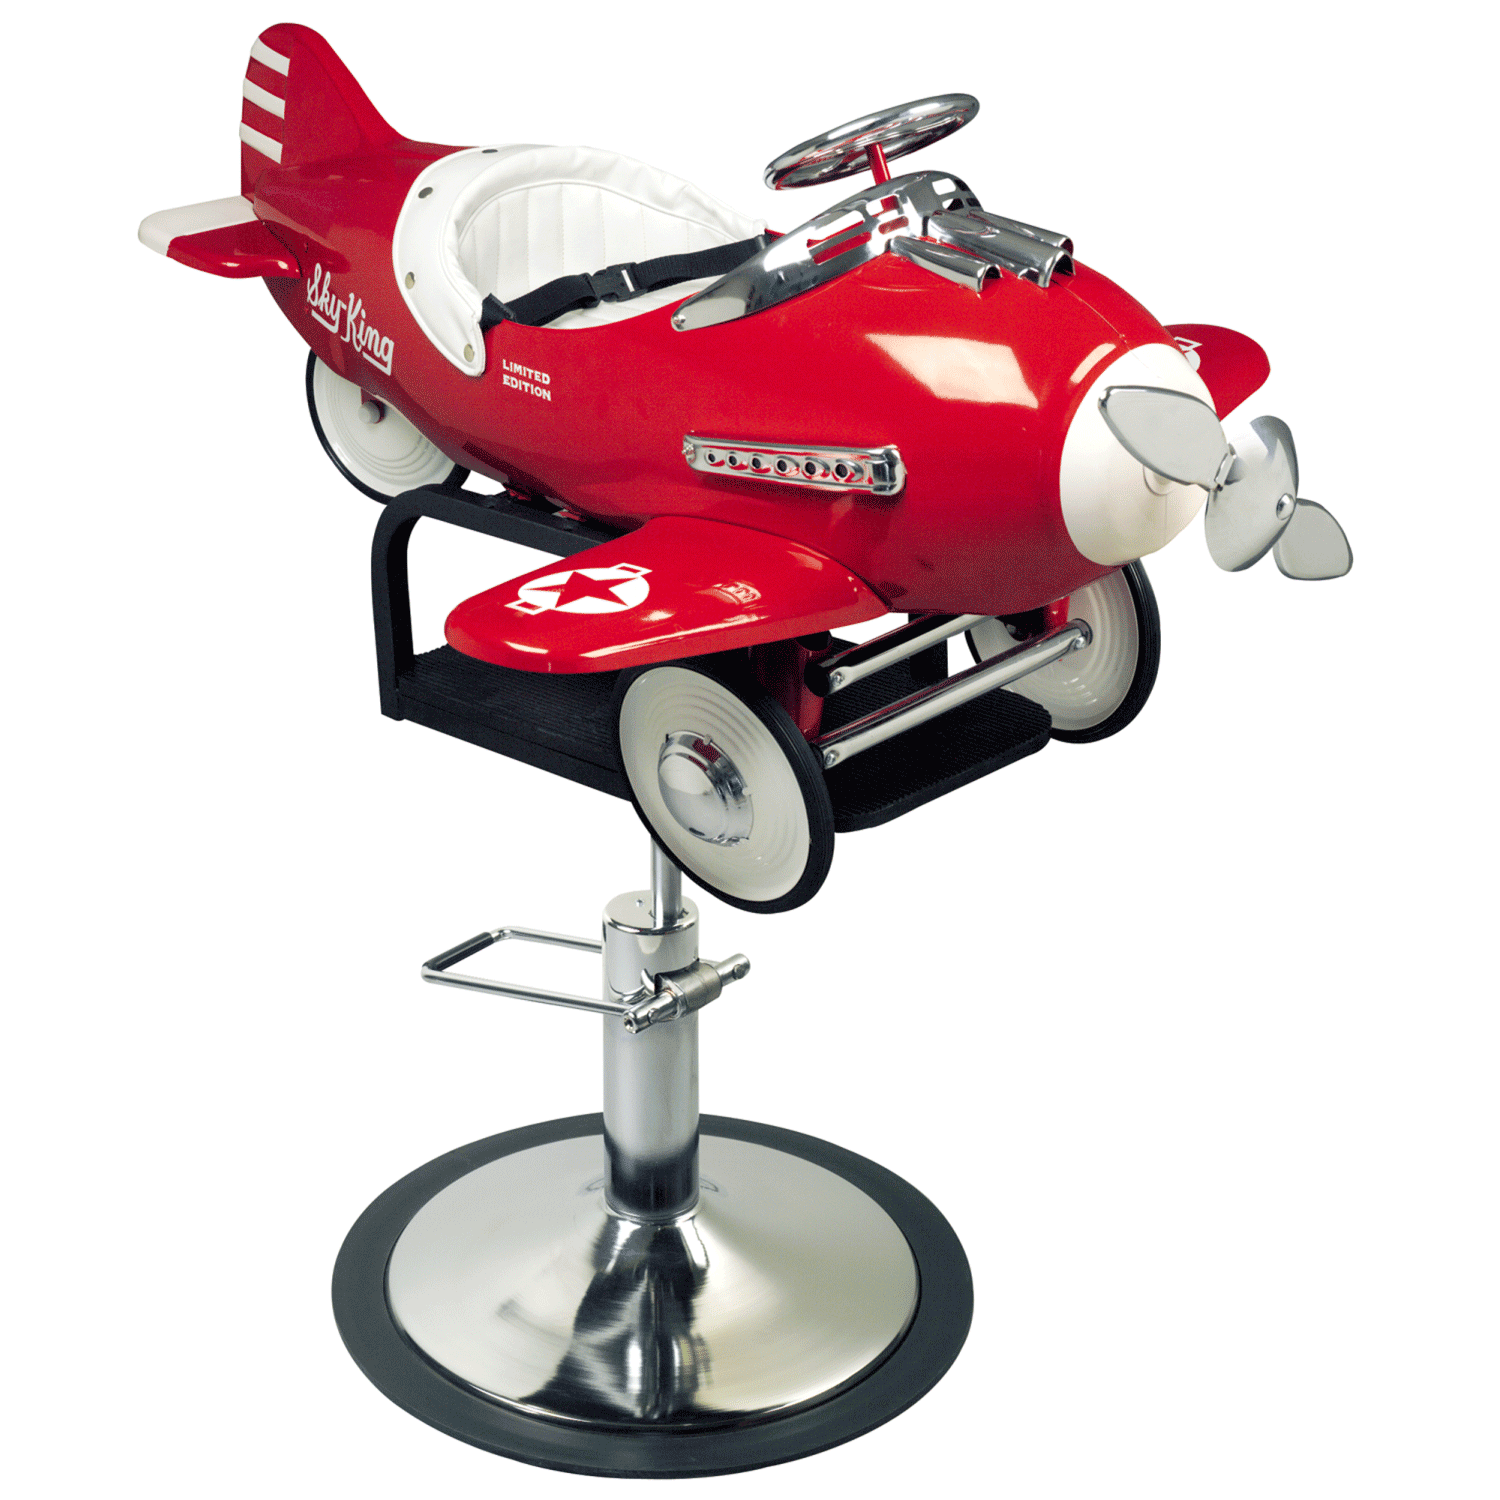 Pibbs Kids Airplane Hydraulic Styling Chair Model 1810 at